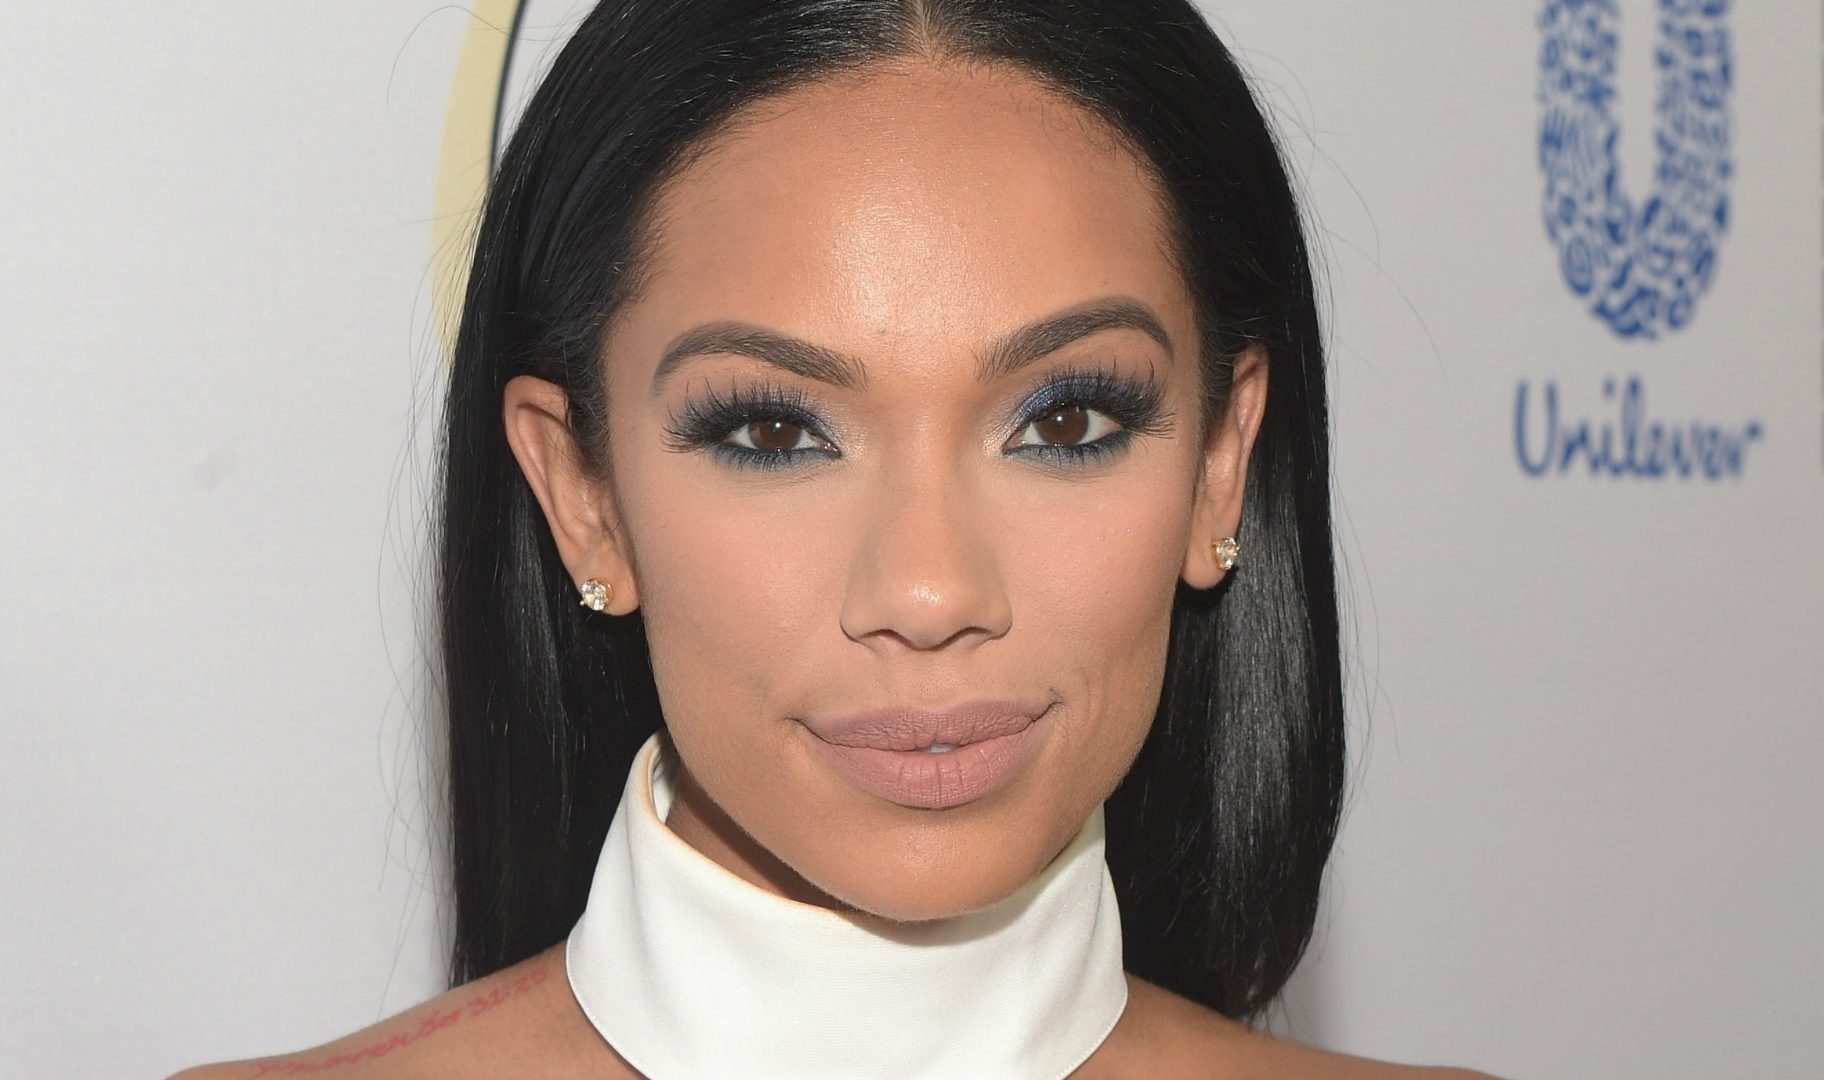 Erica Mena Is Shining In A Golden Dress For Christmas – Check Out The Amazing Home Decor